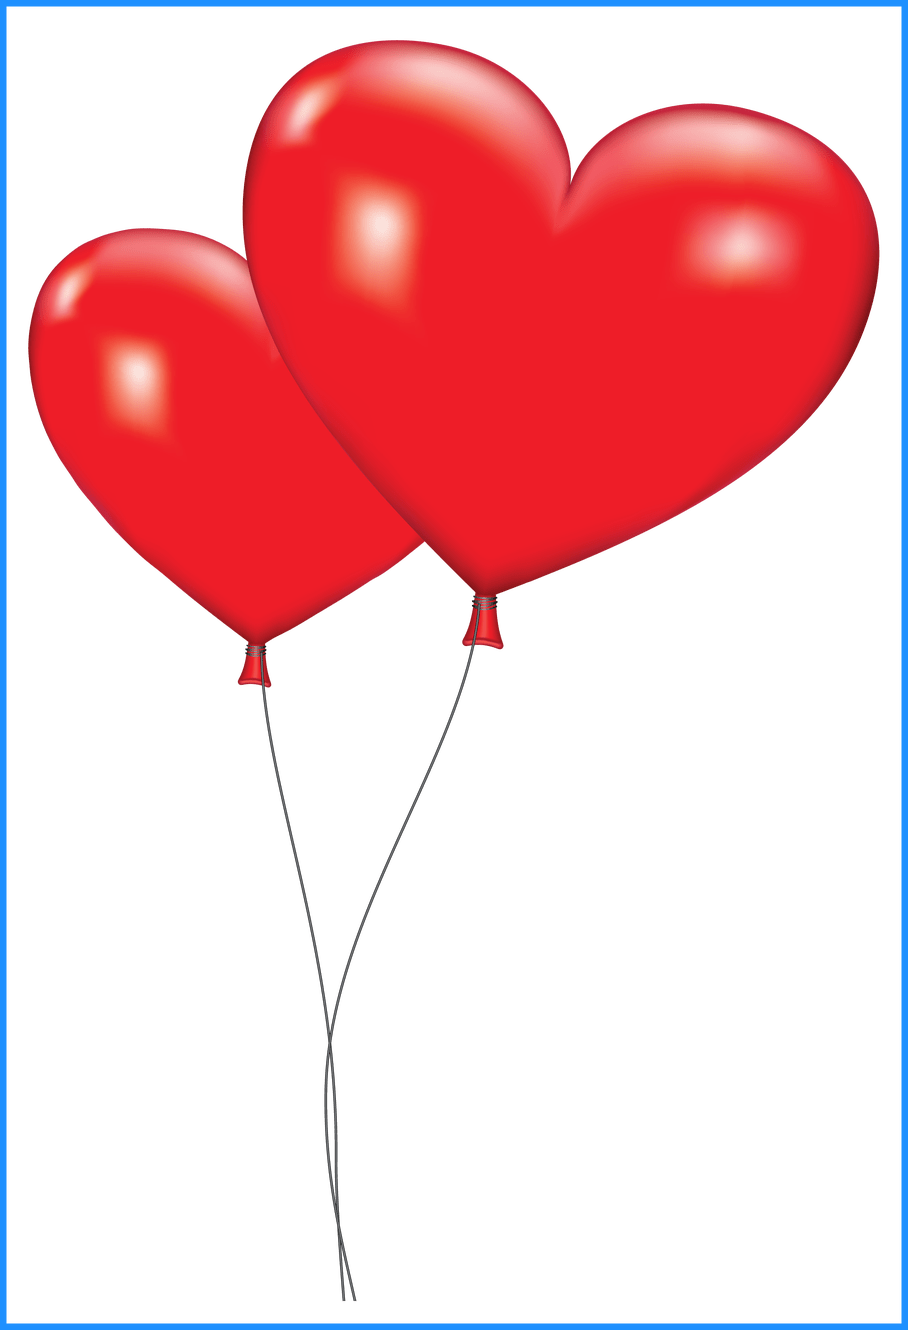 Heart clipart bouquet. The best orange balloon